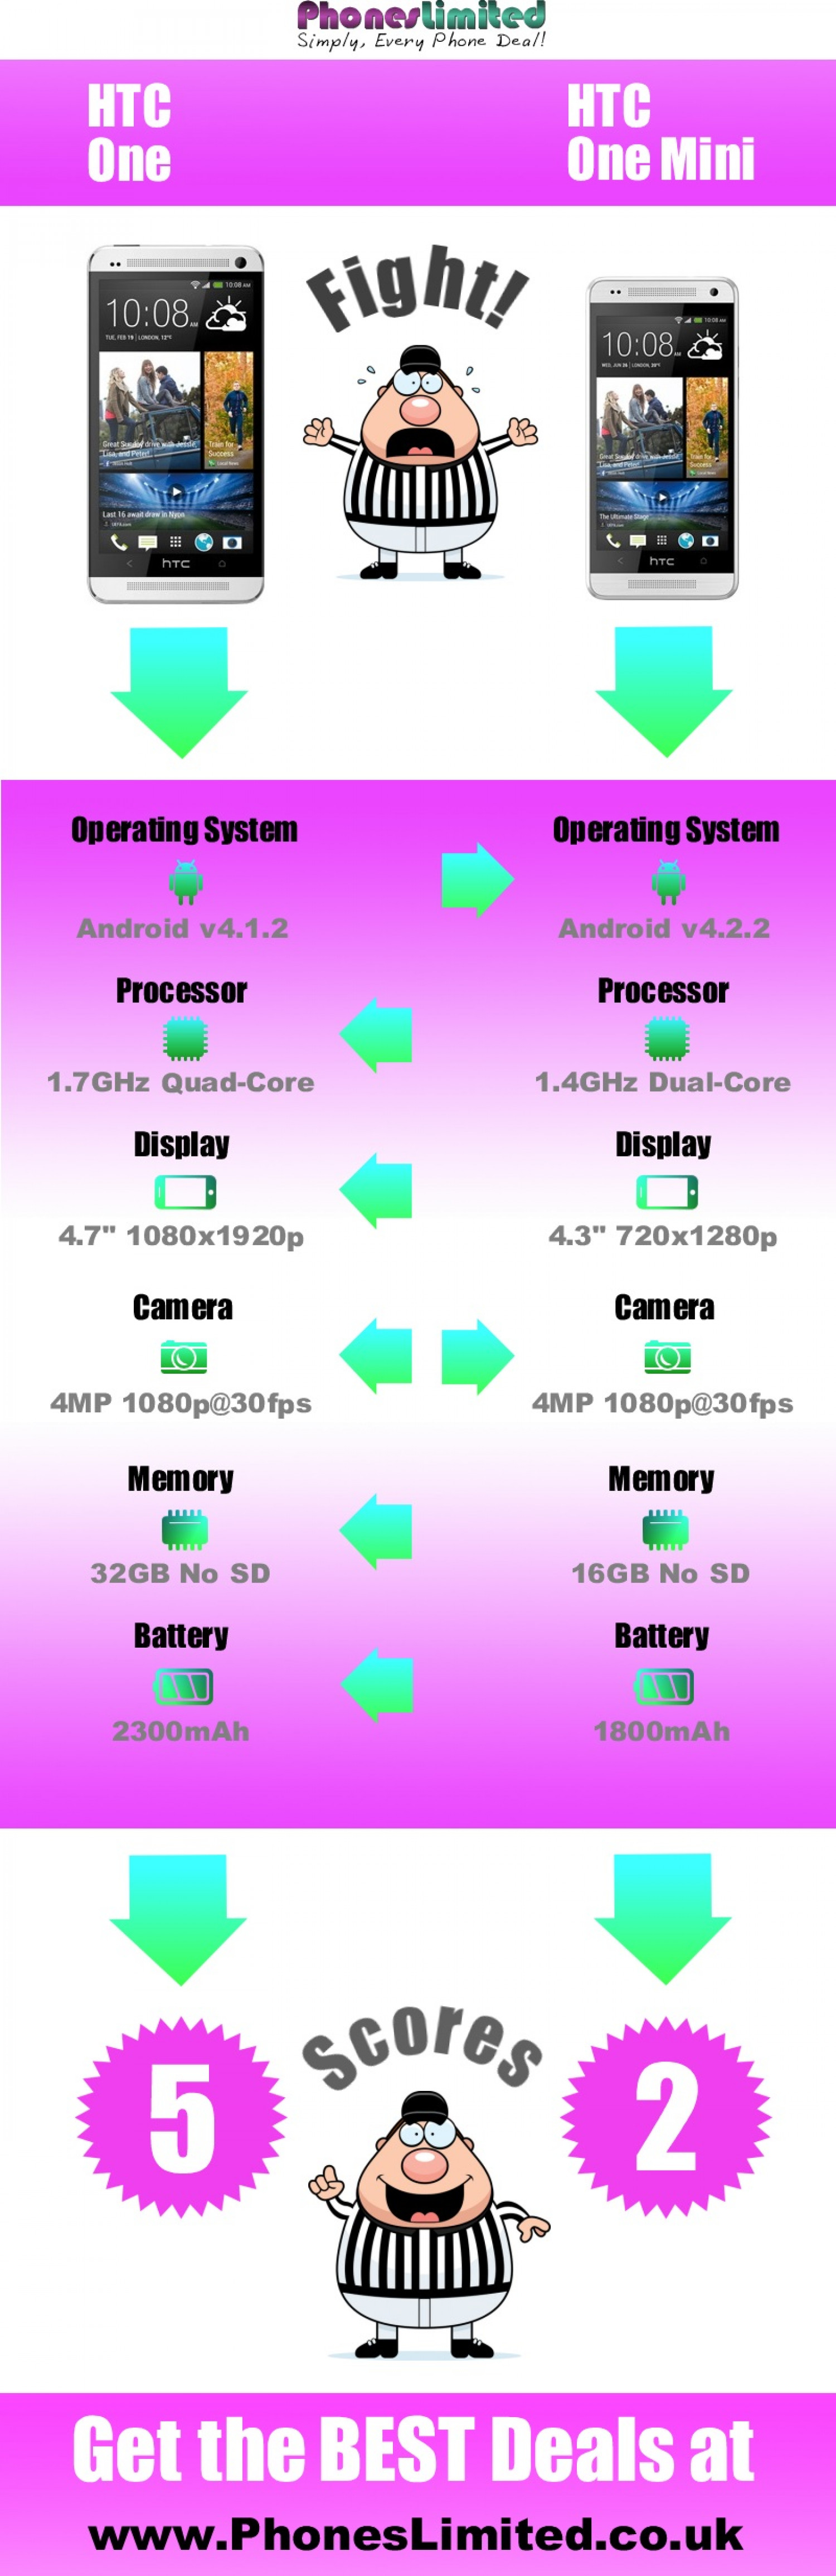 HTC One Vs HTC One Mini Infographic